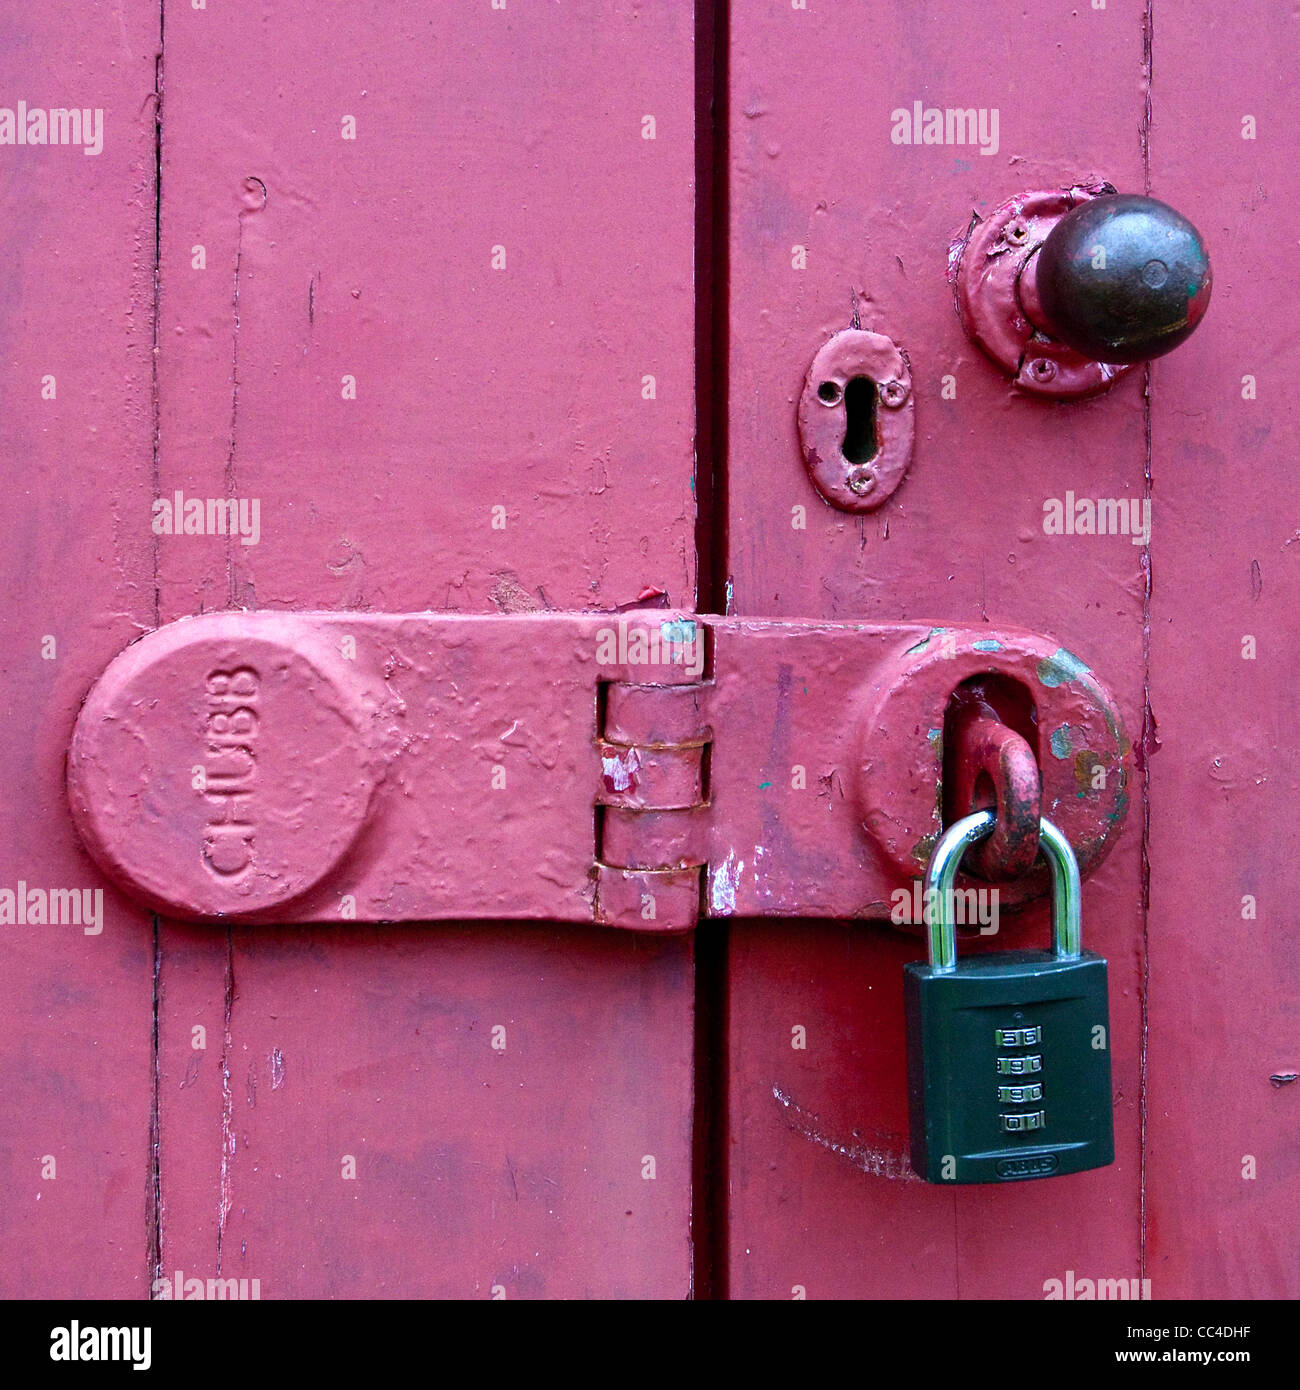 Old Chubb hasp and padlock security locked door & Old Chubb hasp and padlock security locked door Stock Photo ...